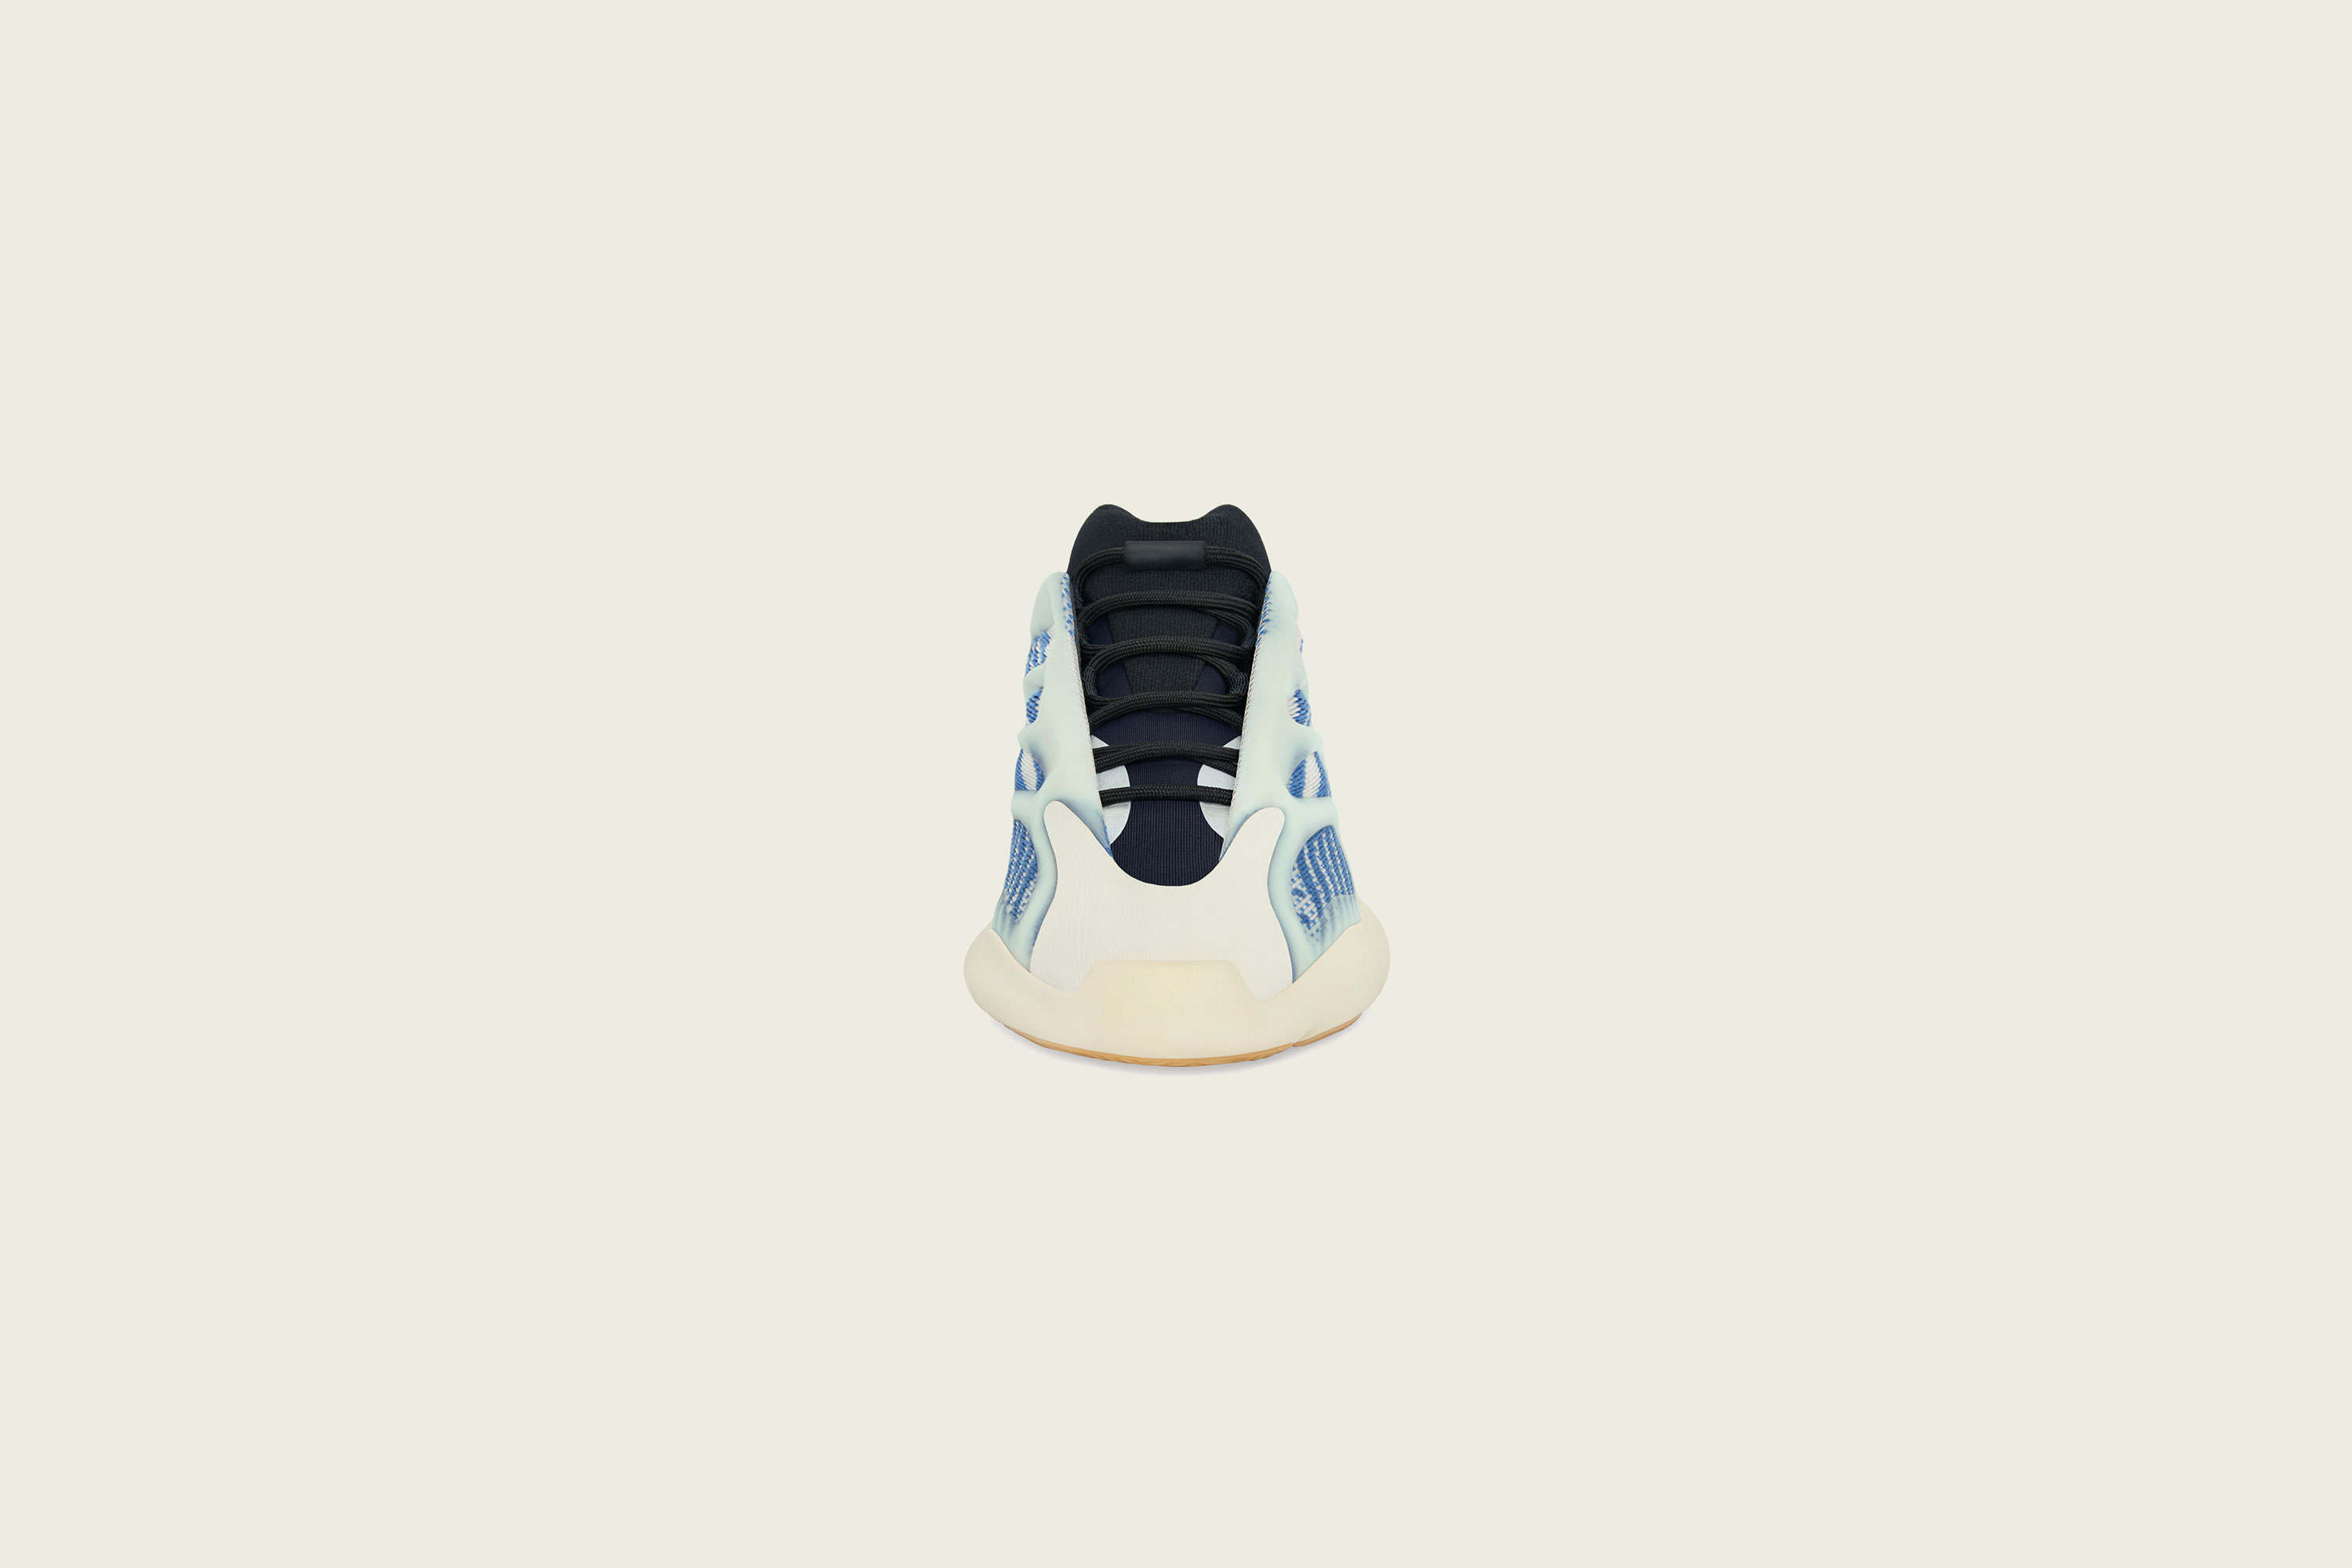 Up There Launches - adidas Originals Yeezy 700v3 - Kyanite